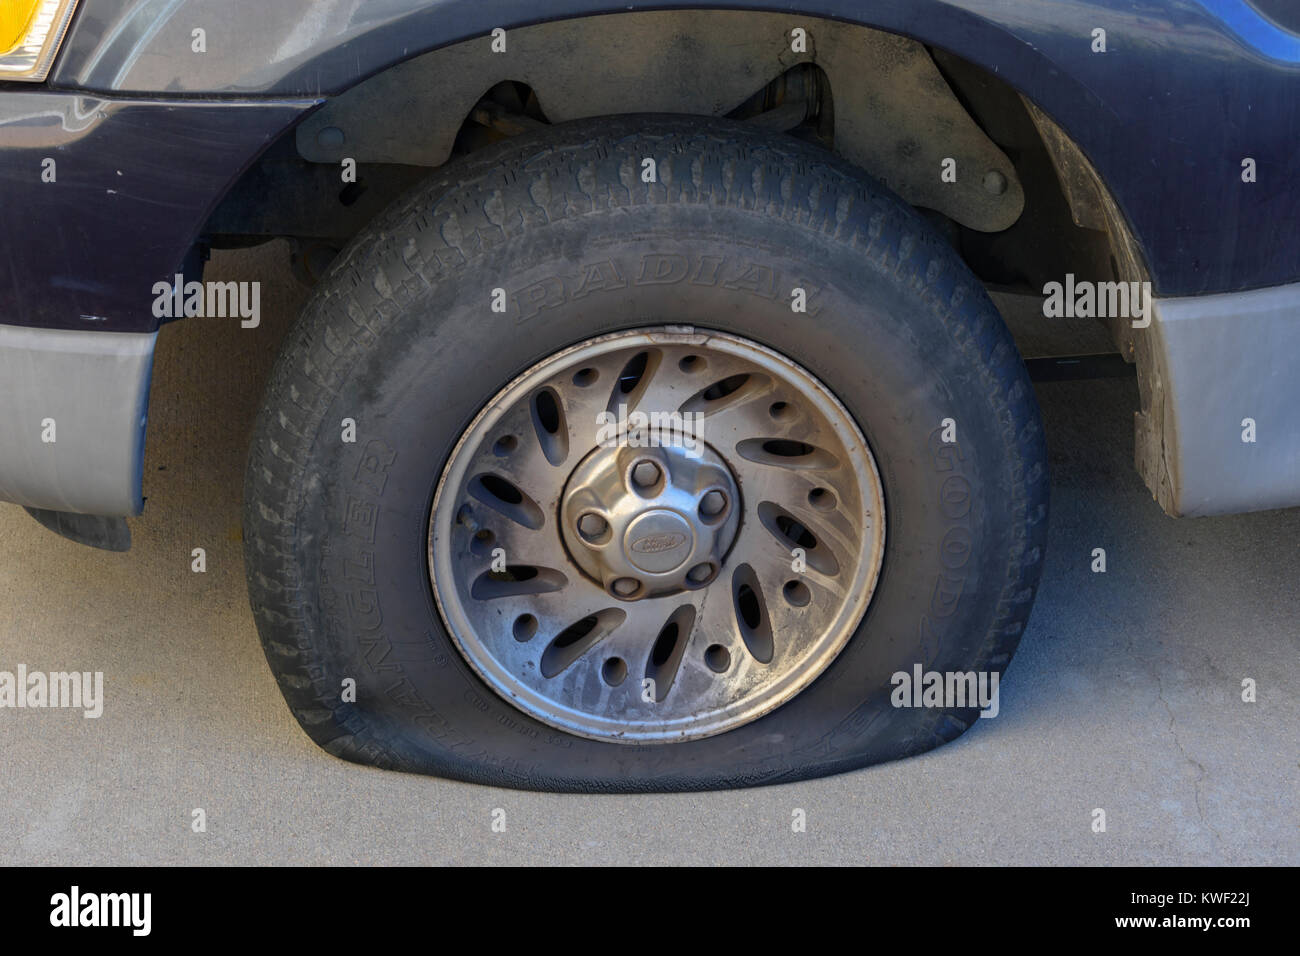 Flat tire on older Ford sport utility vehicle, Colorado US. - Stock Image